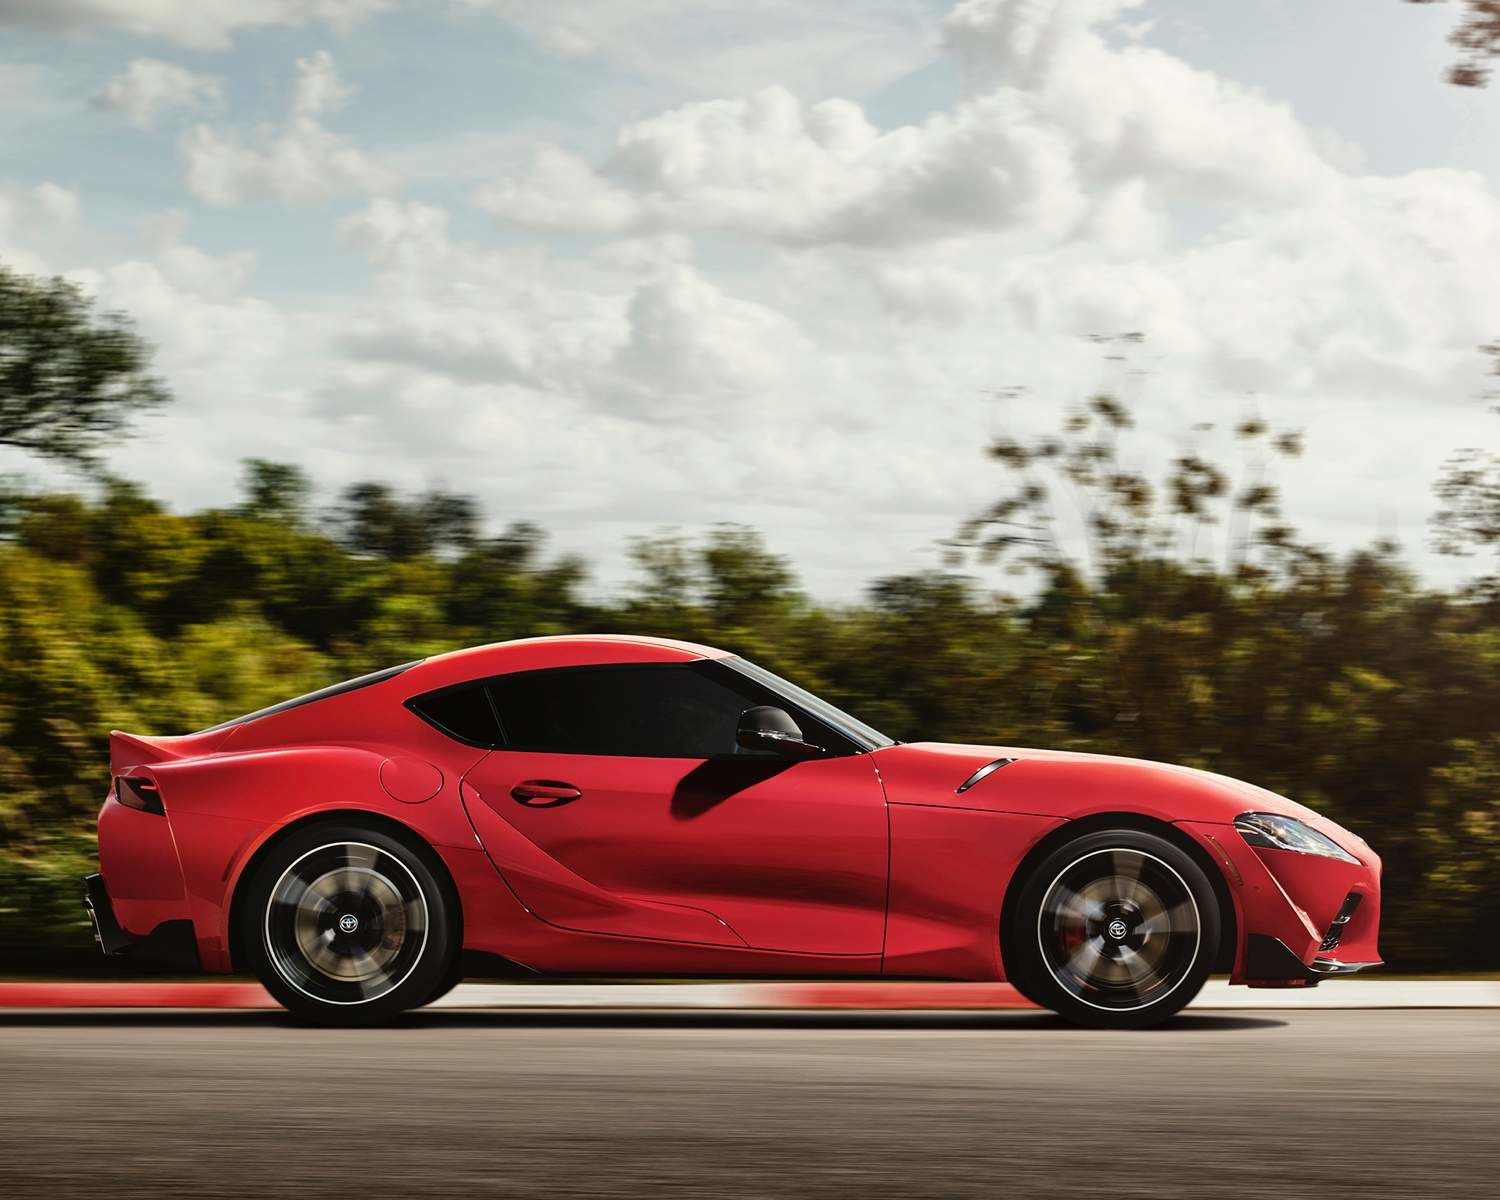 2021 GR Supra 3.0 shown in Renaissance Red 2.0